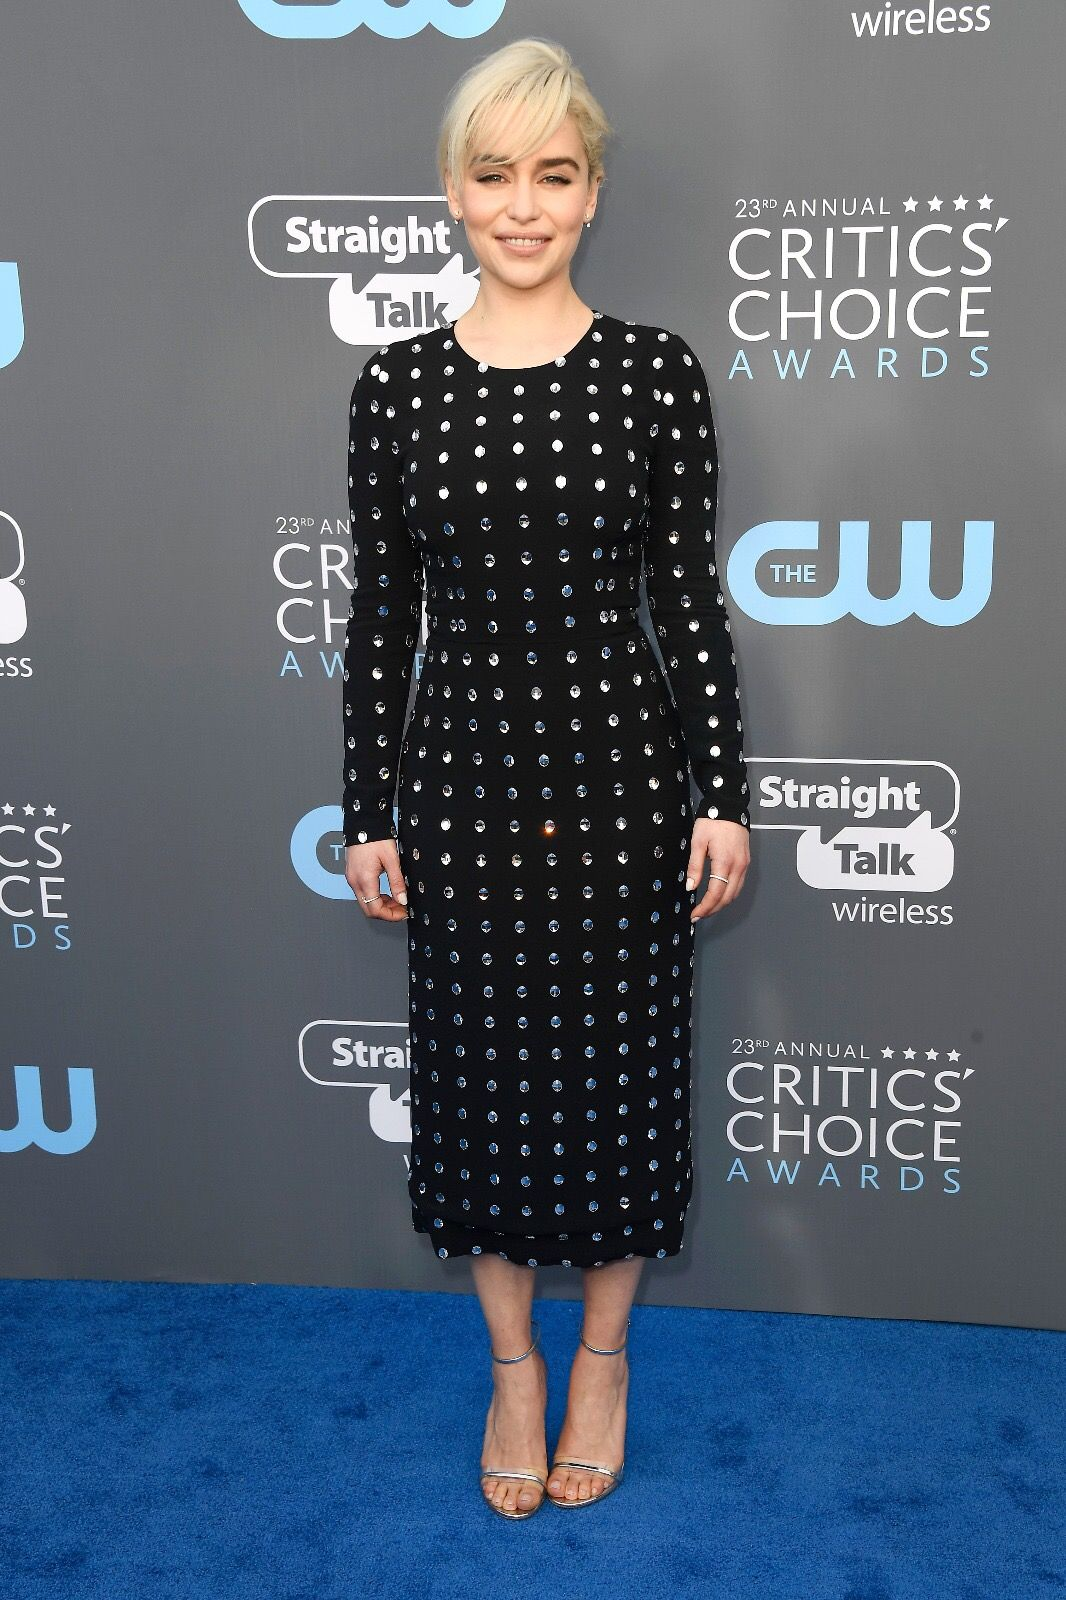 Actress Emilia Clarke, face of The One Eau de Toilette fragrance, wore Dolce&Gabbana for the Critic's Choice Award event in California. #DGWomen #DGCelebs #DGBeauty #DGTheOne